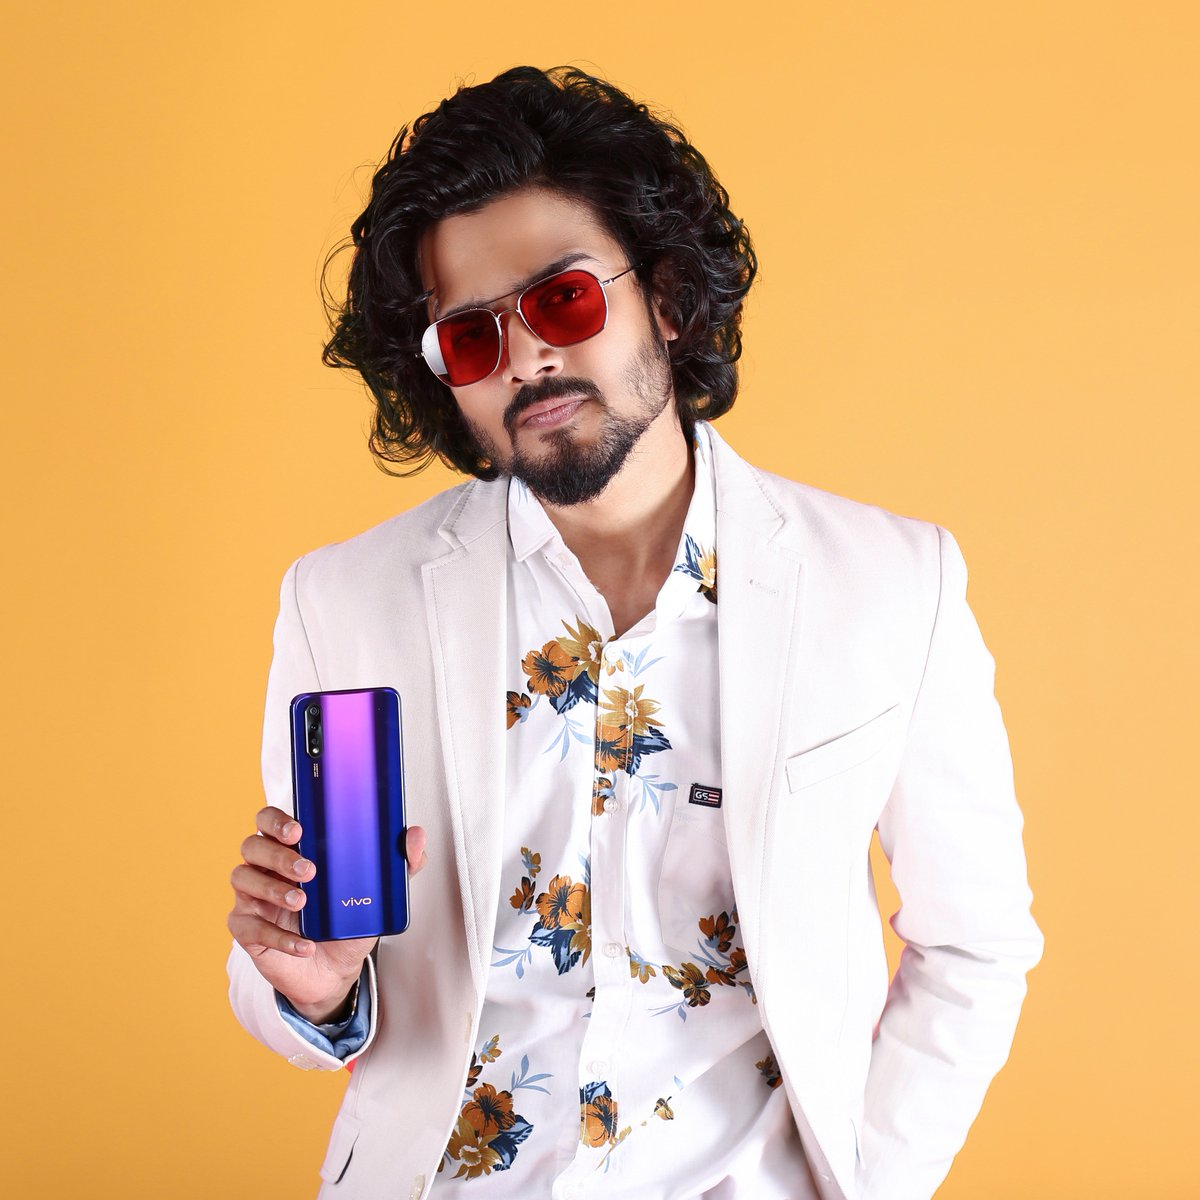 #vivoZ1x ft. @Bhuvan_Bam#FullyLoaded binge sessions on Z1x packed with 16.20cm (6.38) FHD+ (SAmoled) with Flash In-Display Fingerprint, begin in 2 days. First Sale on 13th Sep,12 PM on @Flipkart : http://bit.ly/2kcszP1 and http://vivo.com/in